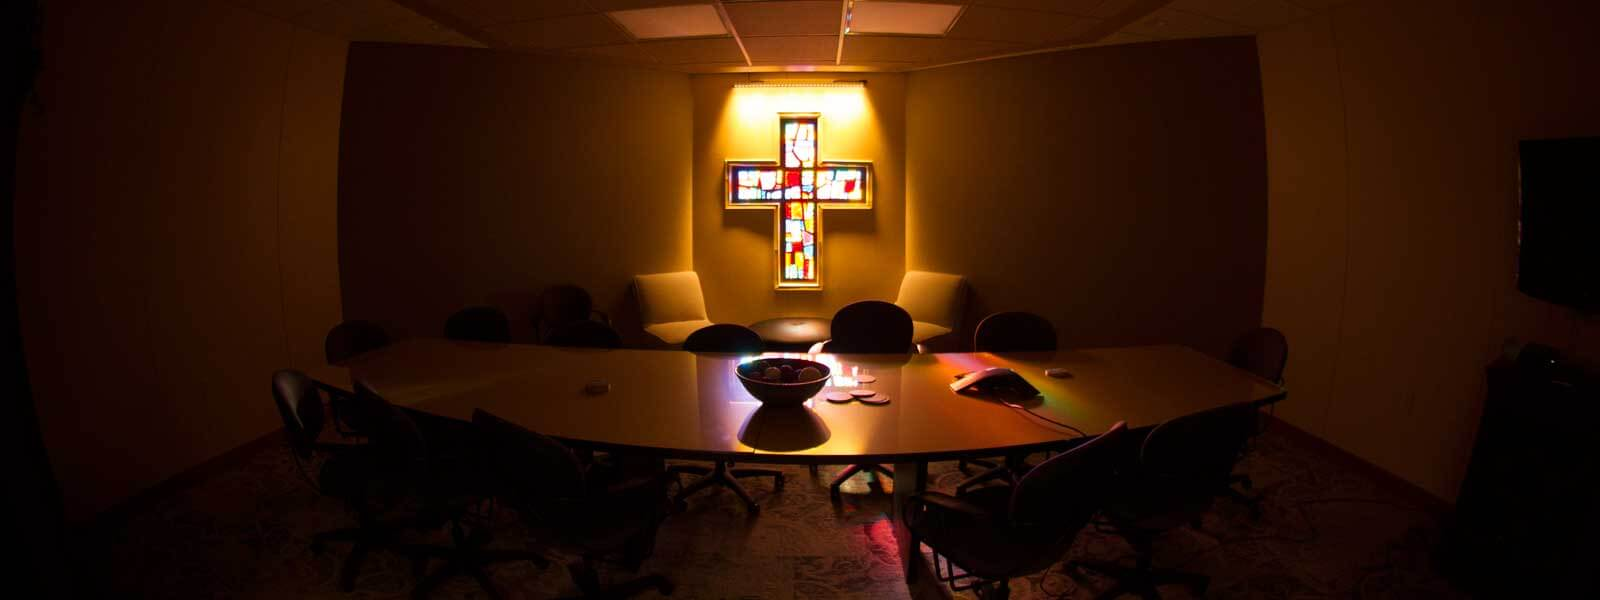 stained glass cross window in conference room